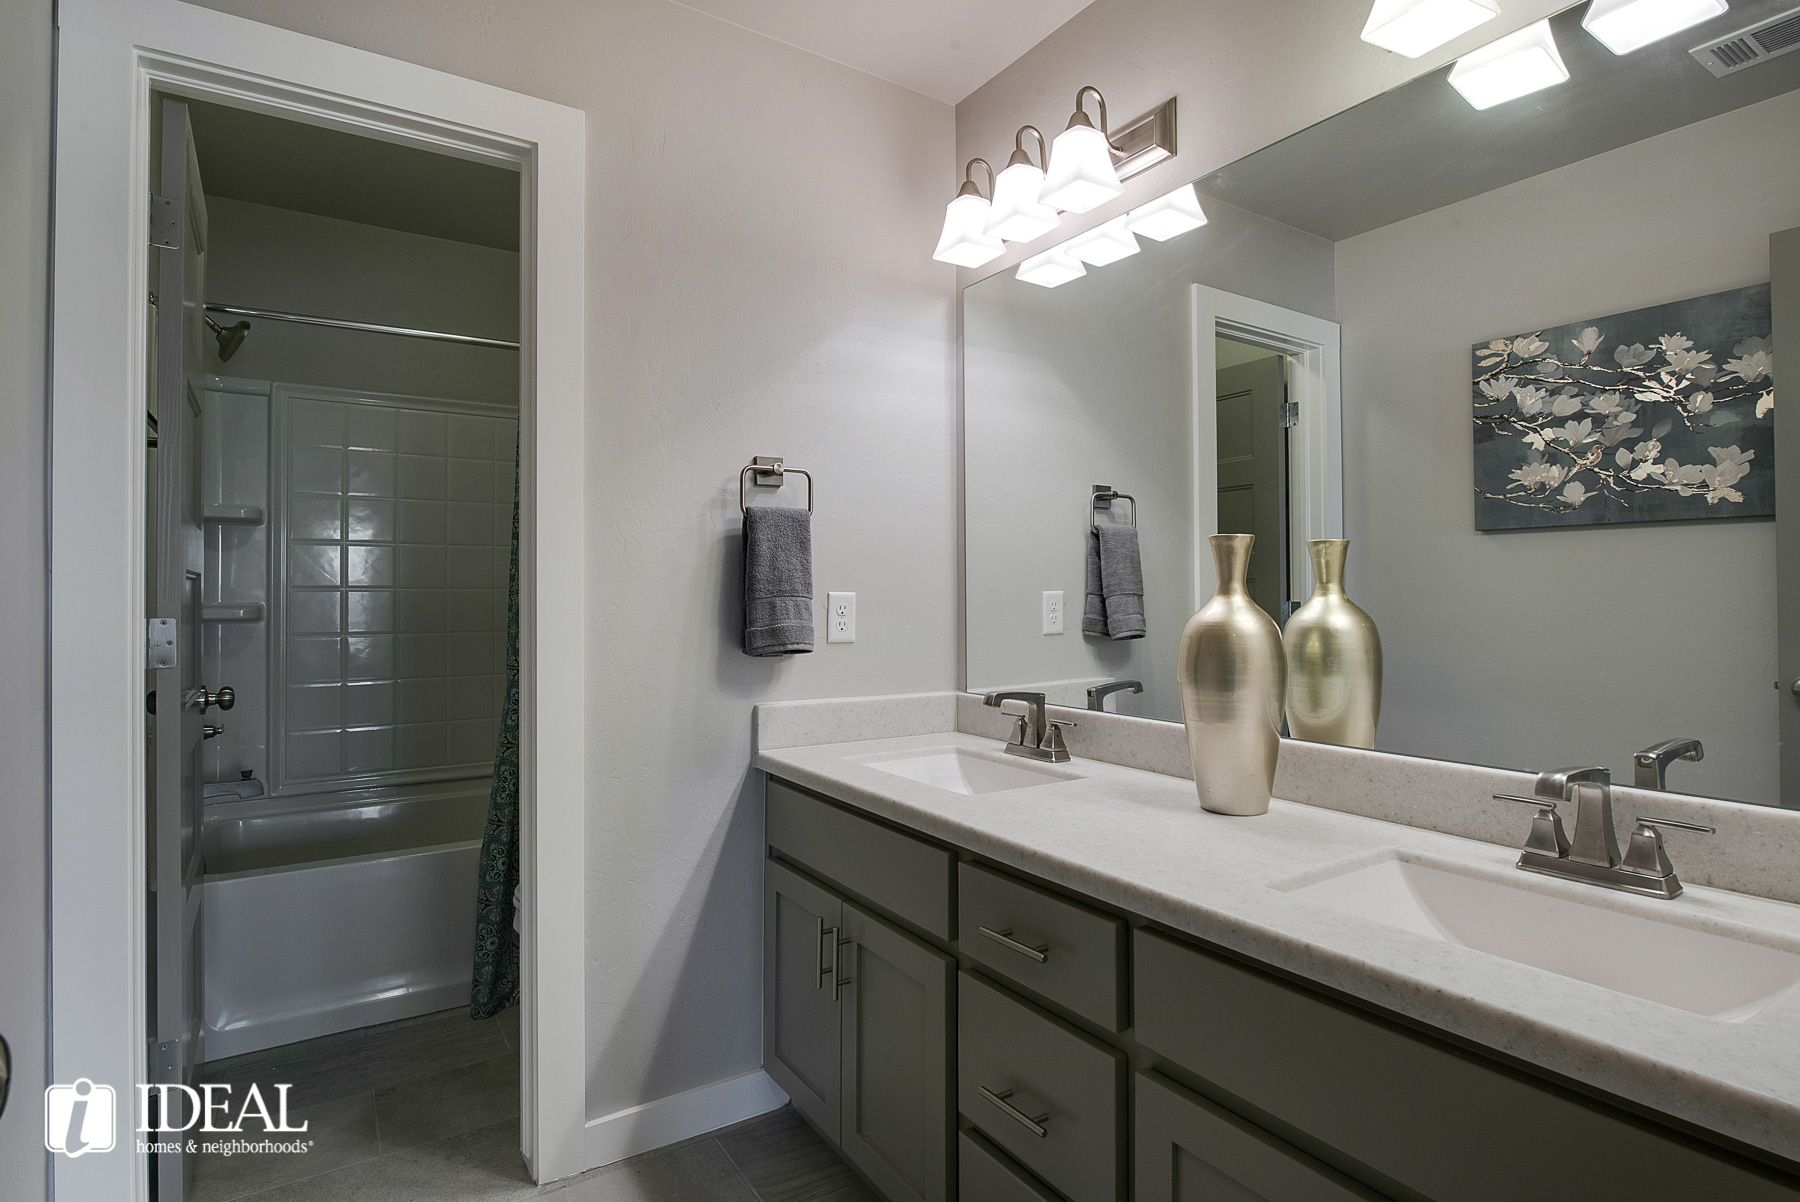 Bathroom featured in the Morrison By Ideal Homes in Oklahoma City, OK